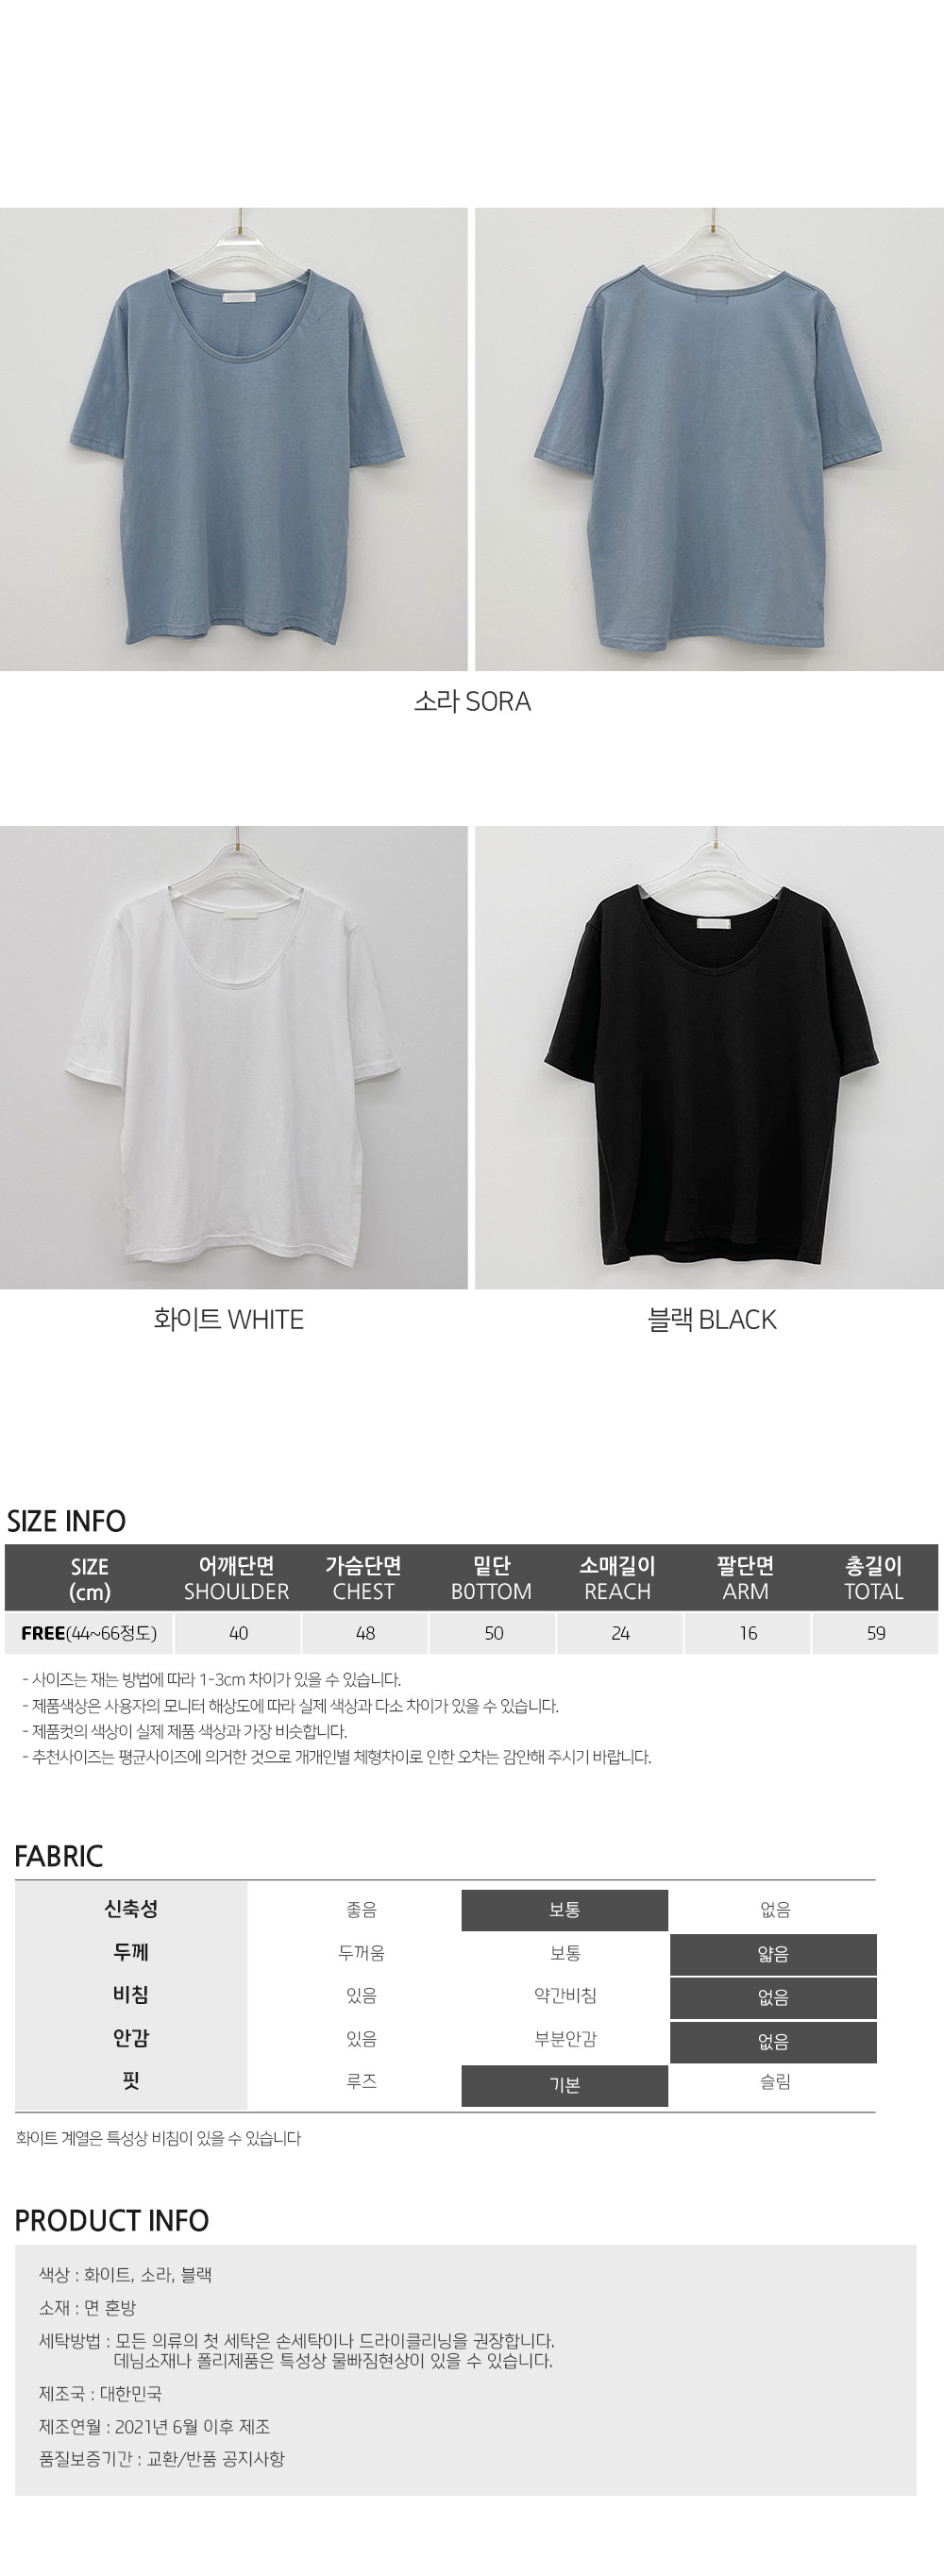 Nugget Pintuck Cotton Half Pants + U-neck Cotton Short Sleeve T-shirt for Daily Life